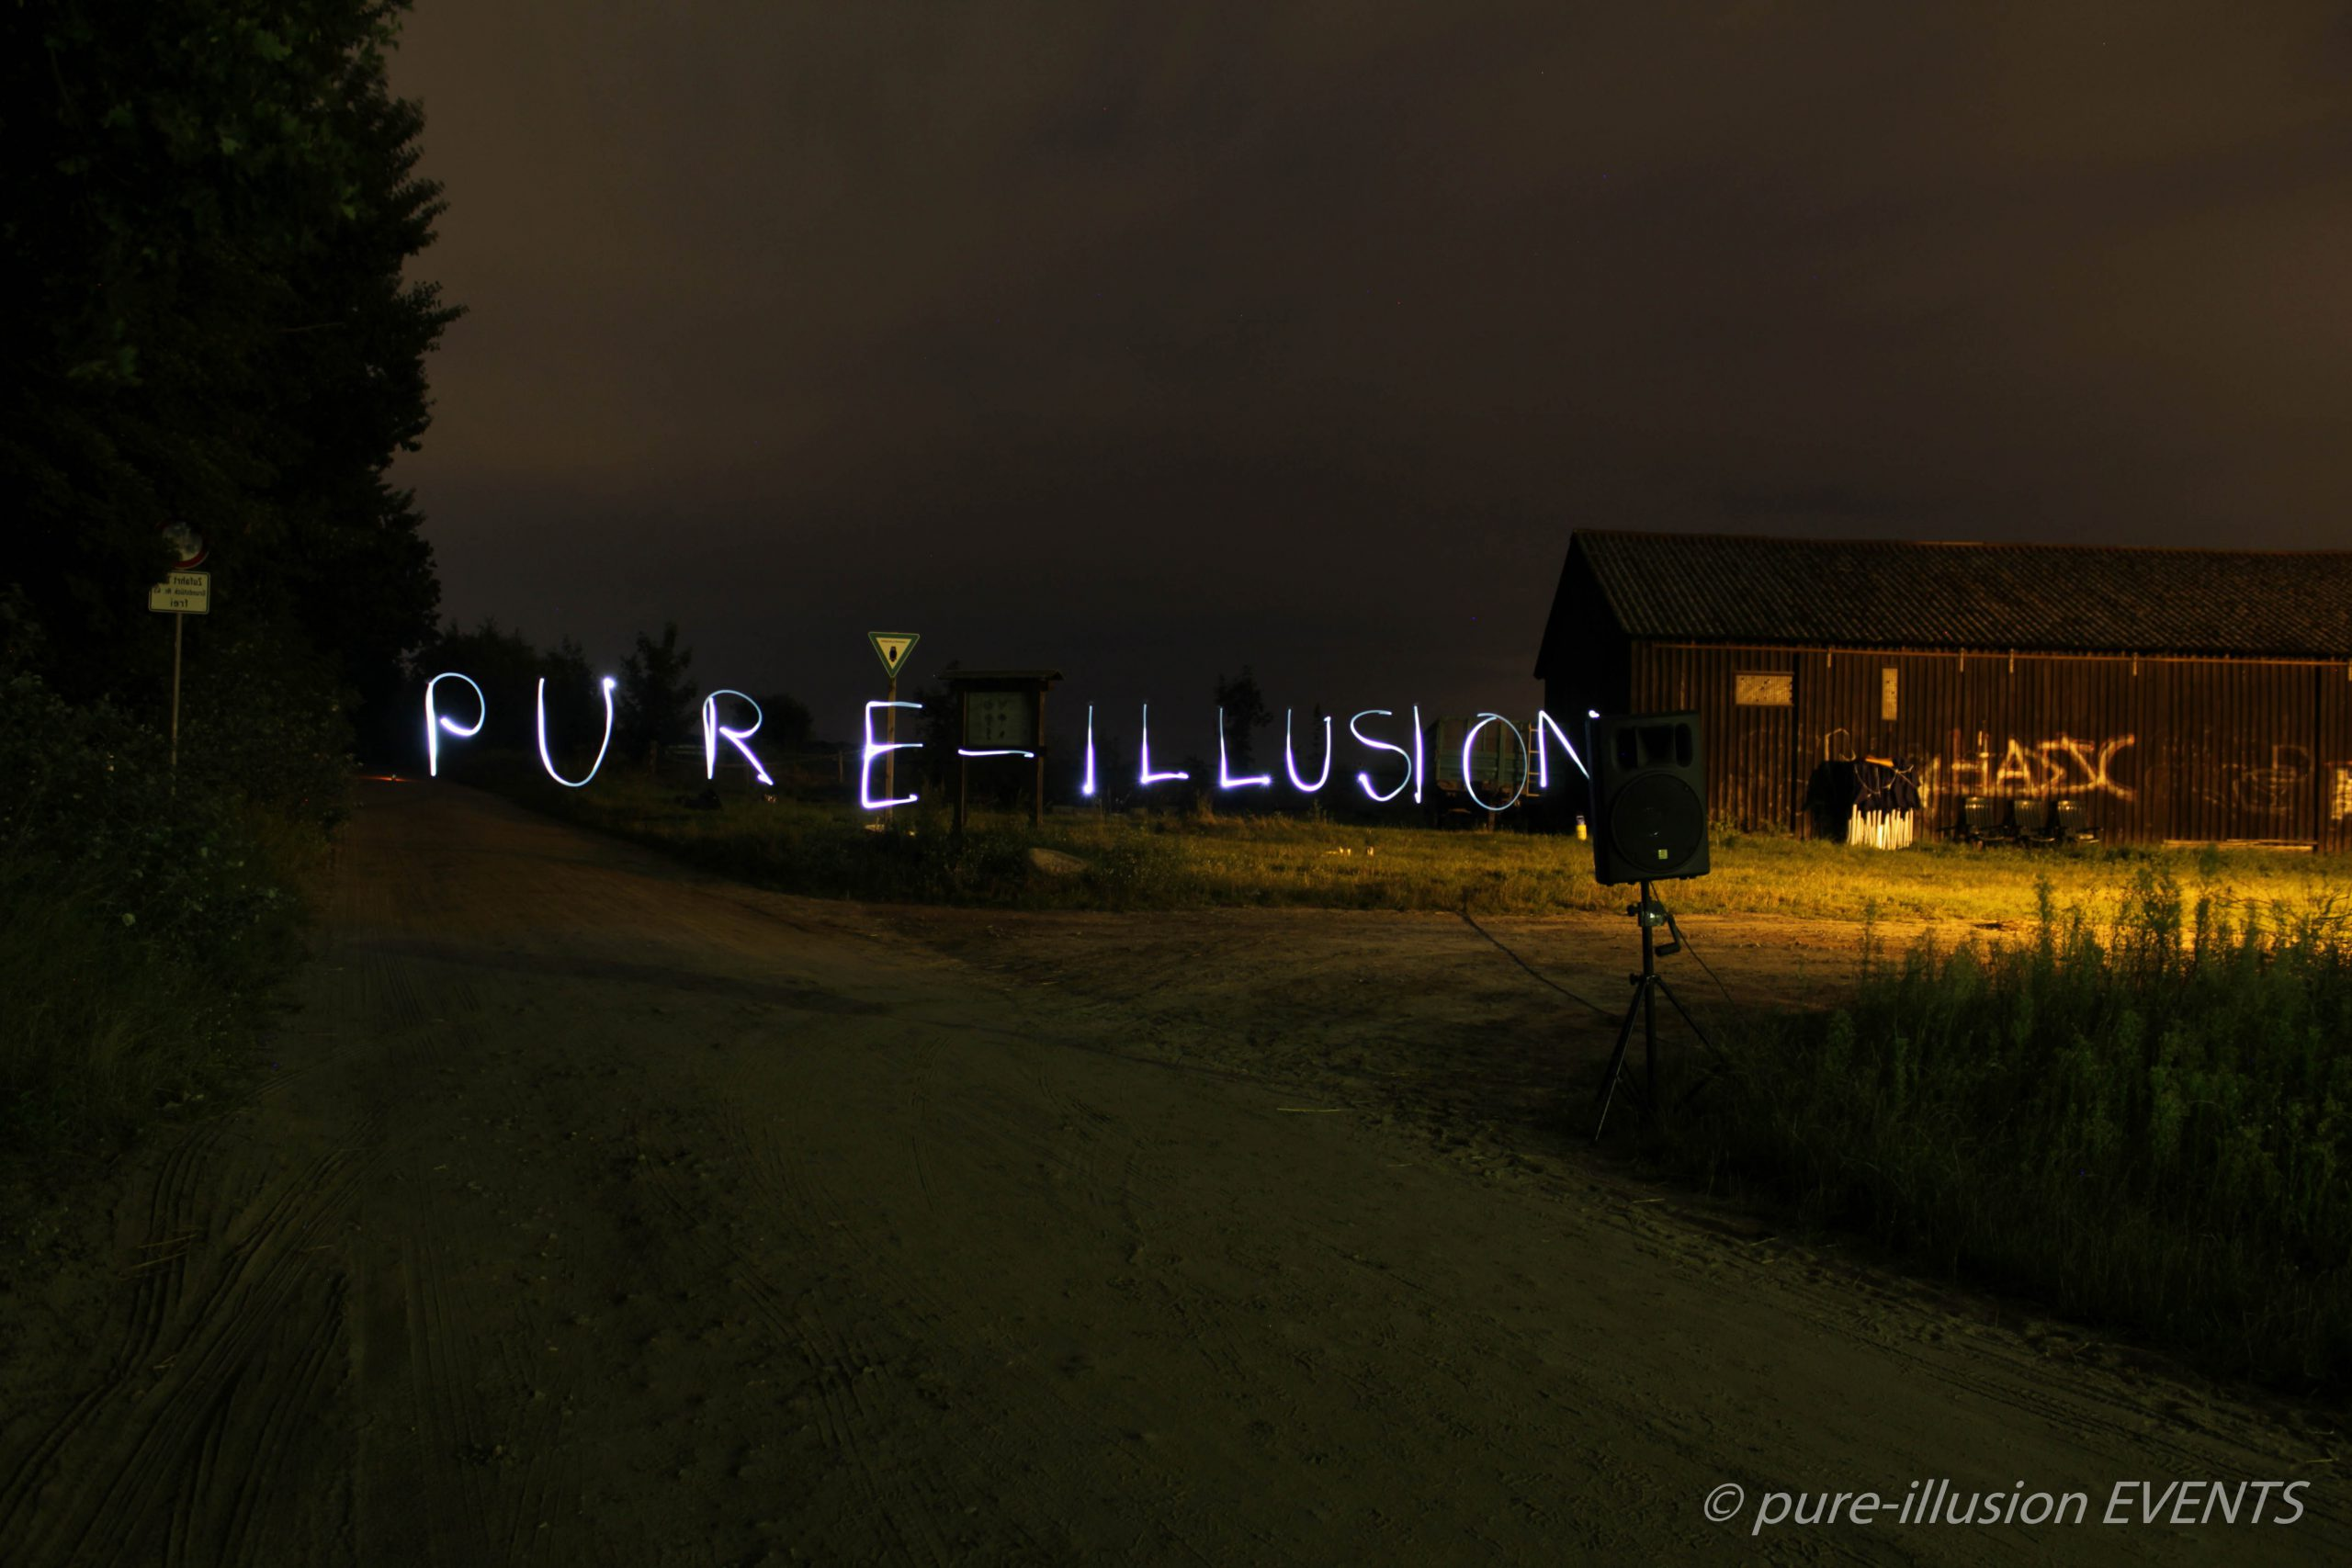 pure-illusion